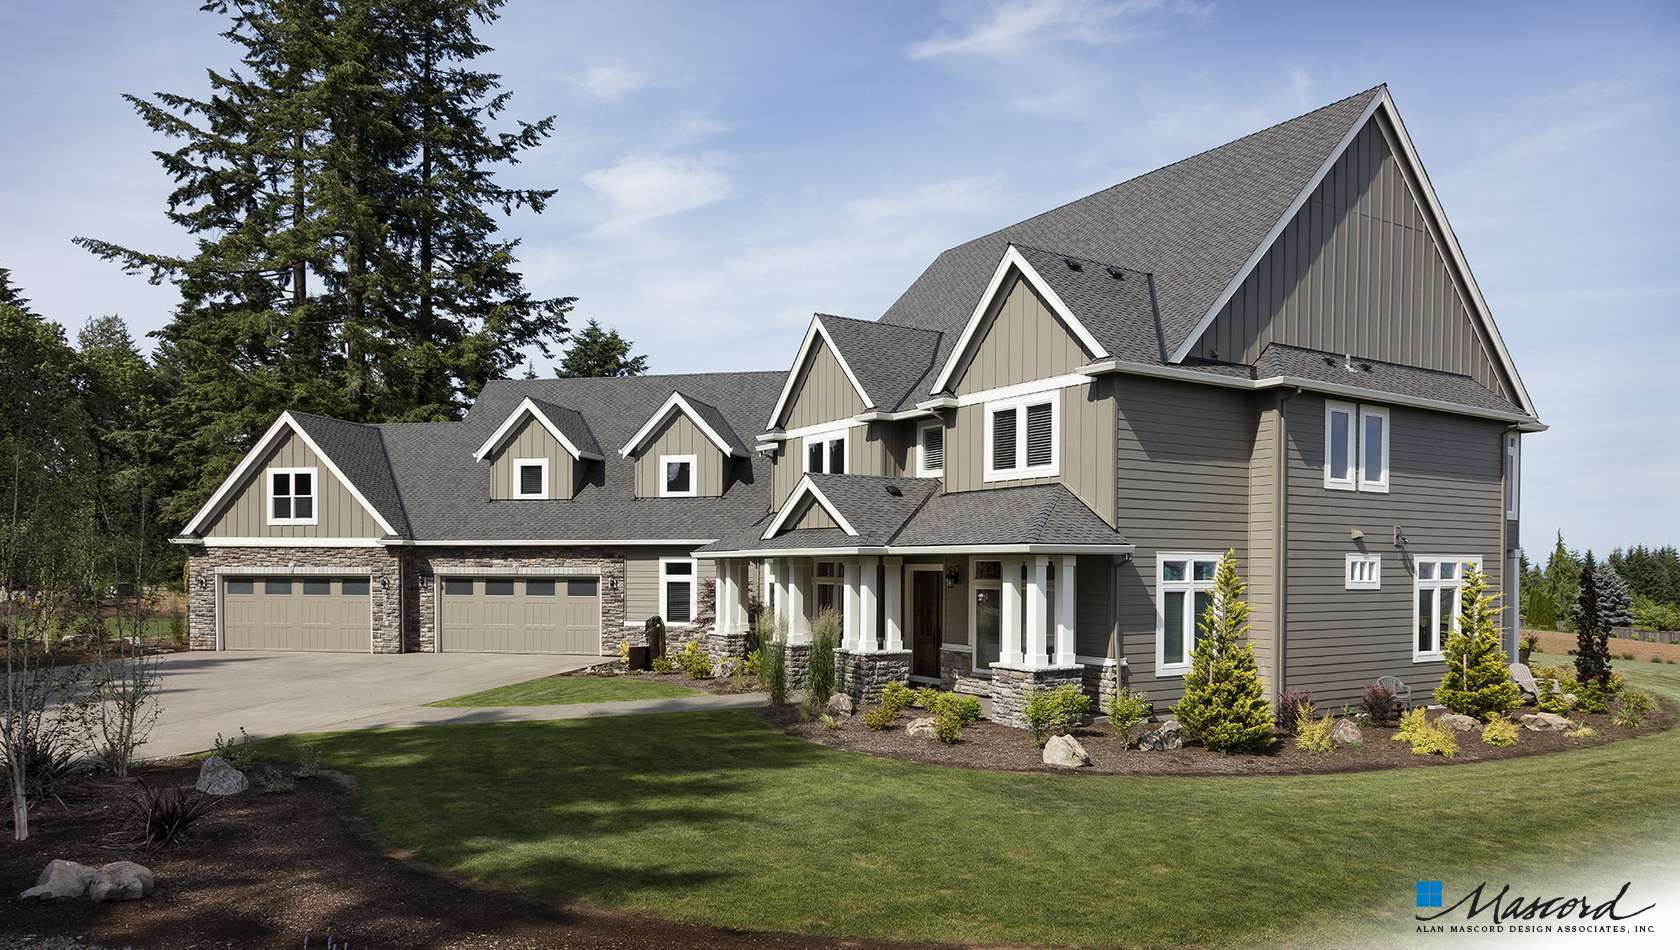 Main image for house plan 2474: The Morristown